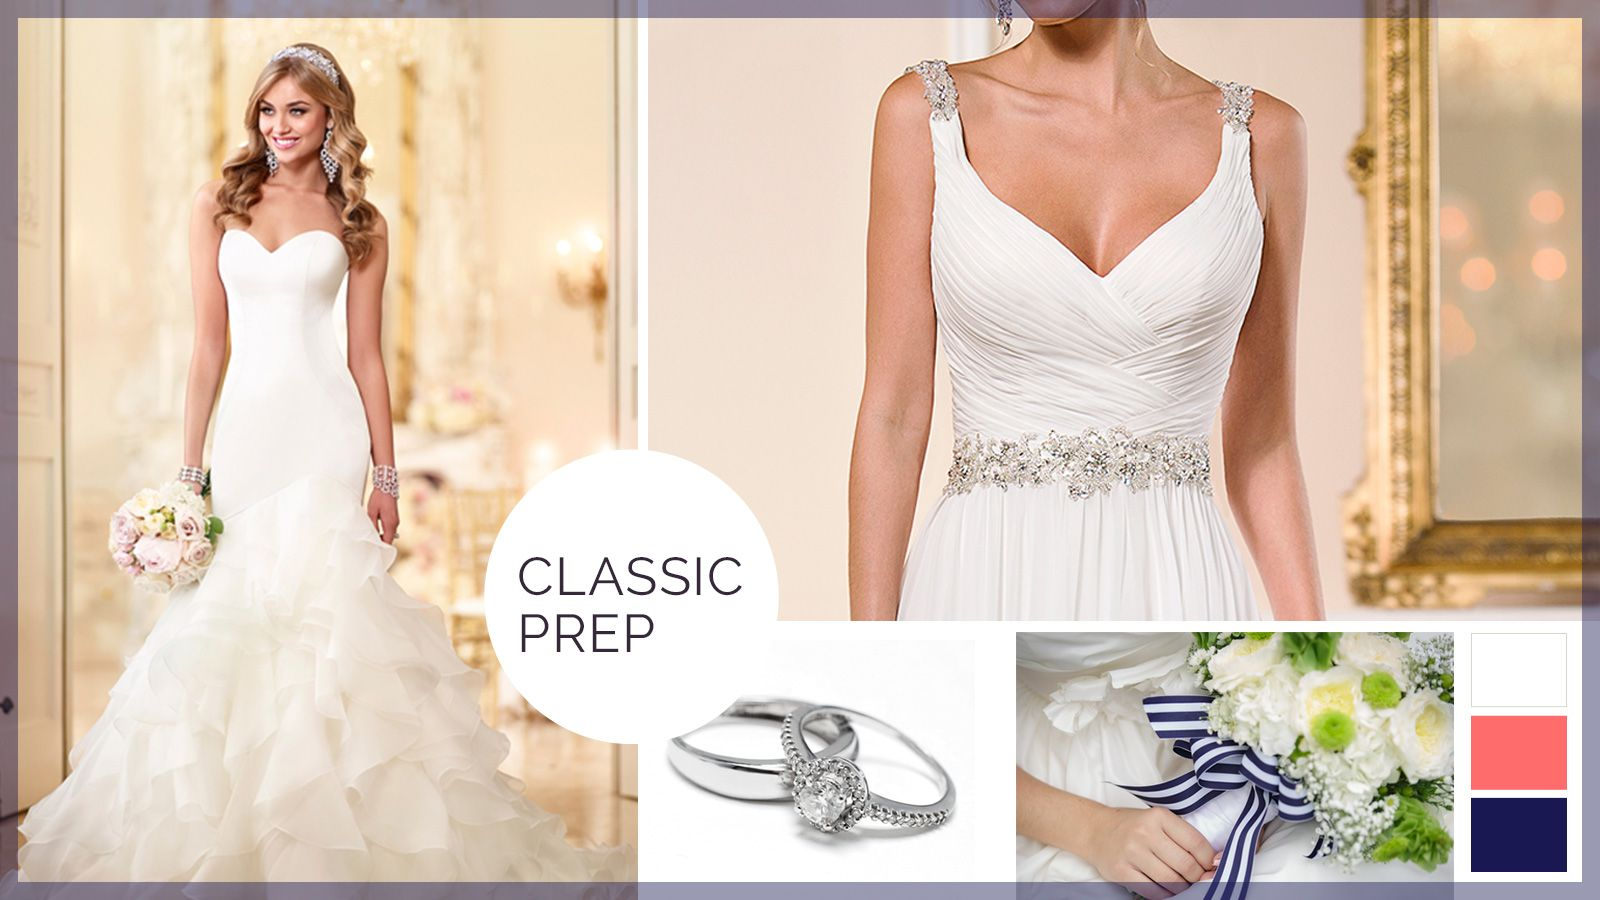 Wedding Dress Quiz.What Is Your Bridal Style Wedding Dress Quiz Classic Wedding